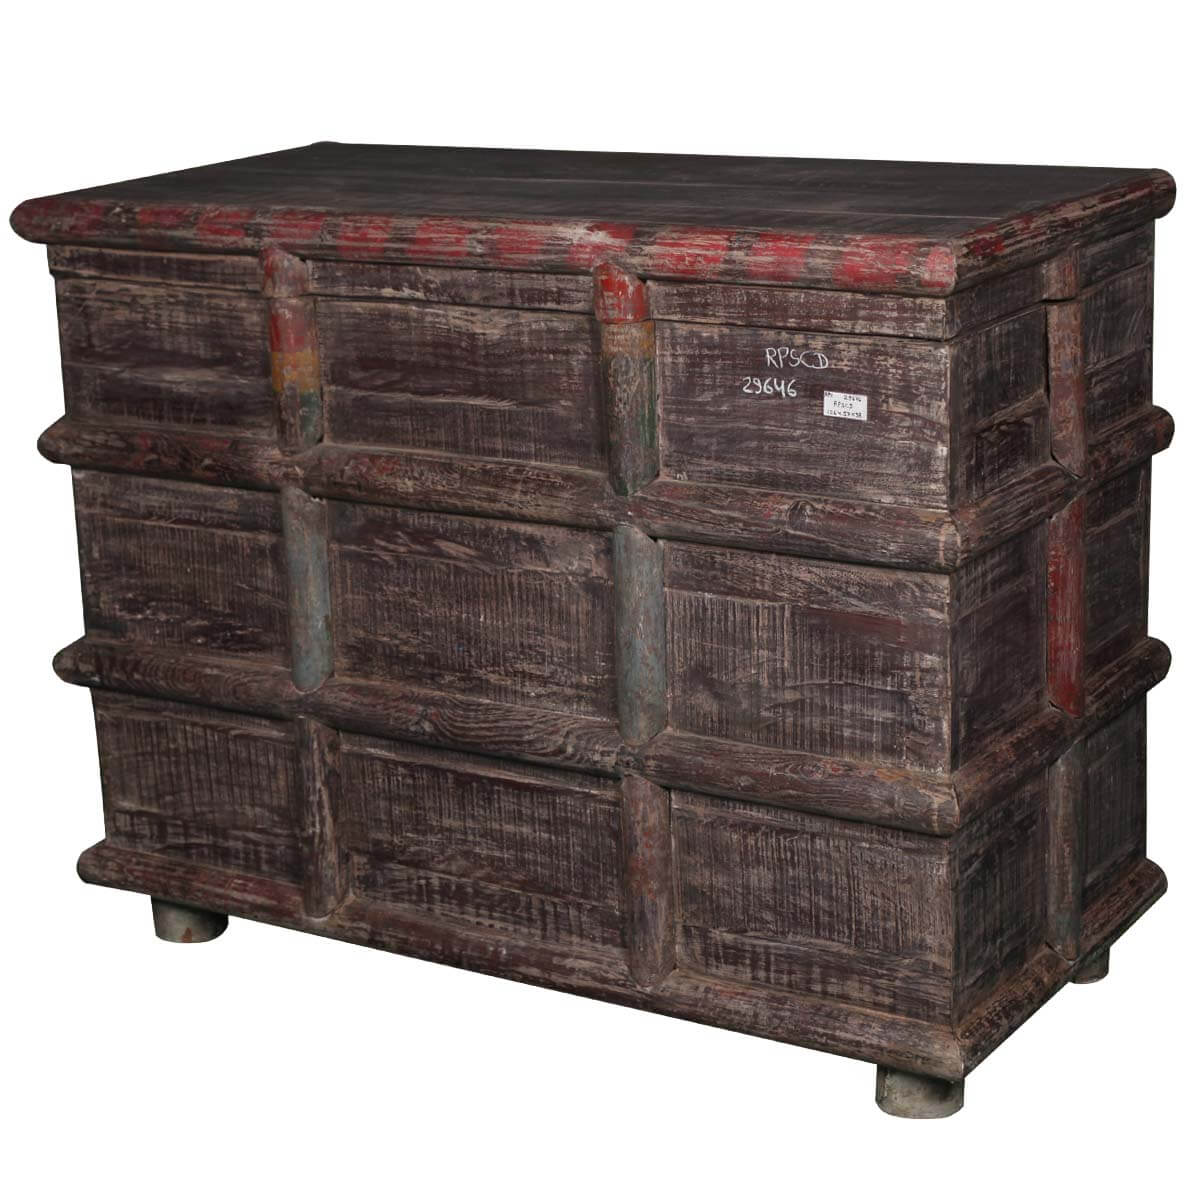 Beaufort Gothic Reclaimed Wood Log Inspired Storage Chest